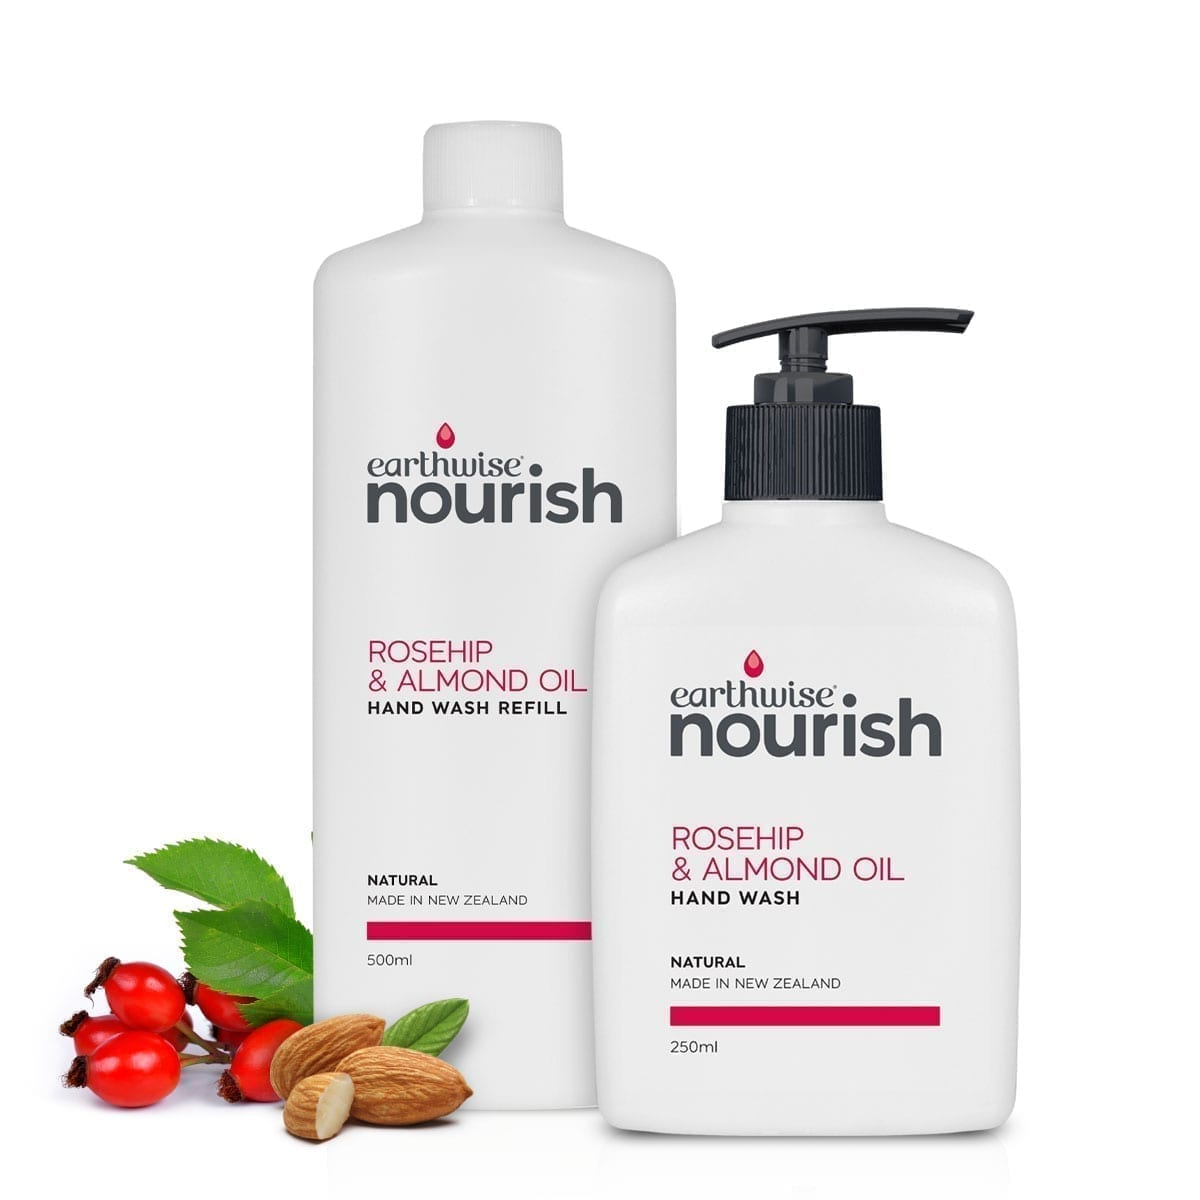 Earthwise Nourish Rosehip & Almond Oil Hand Wash